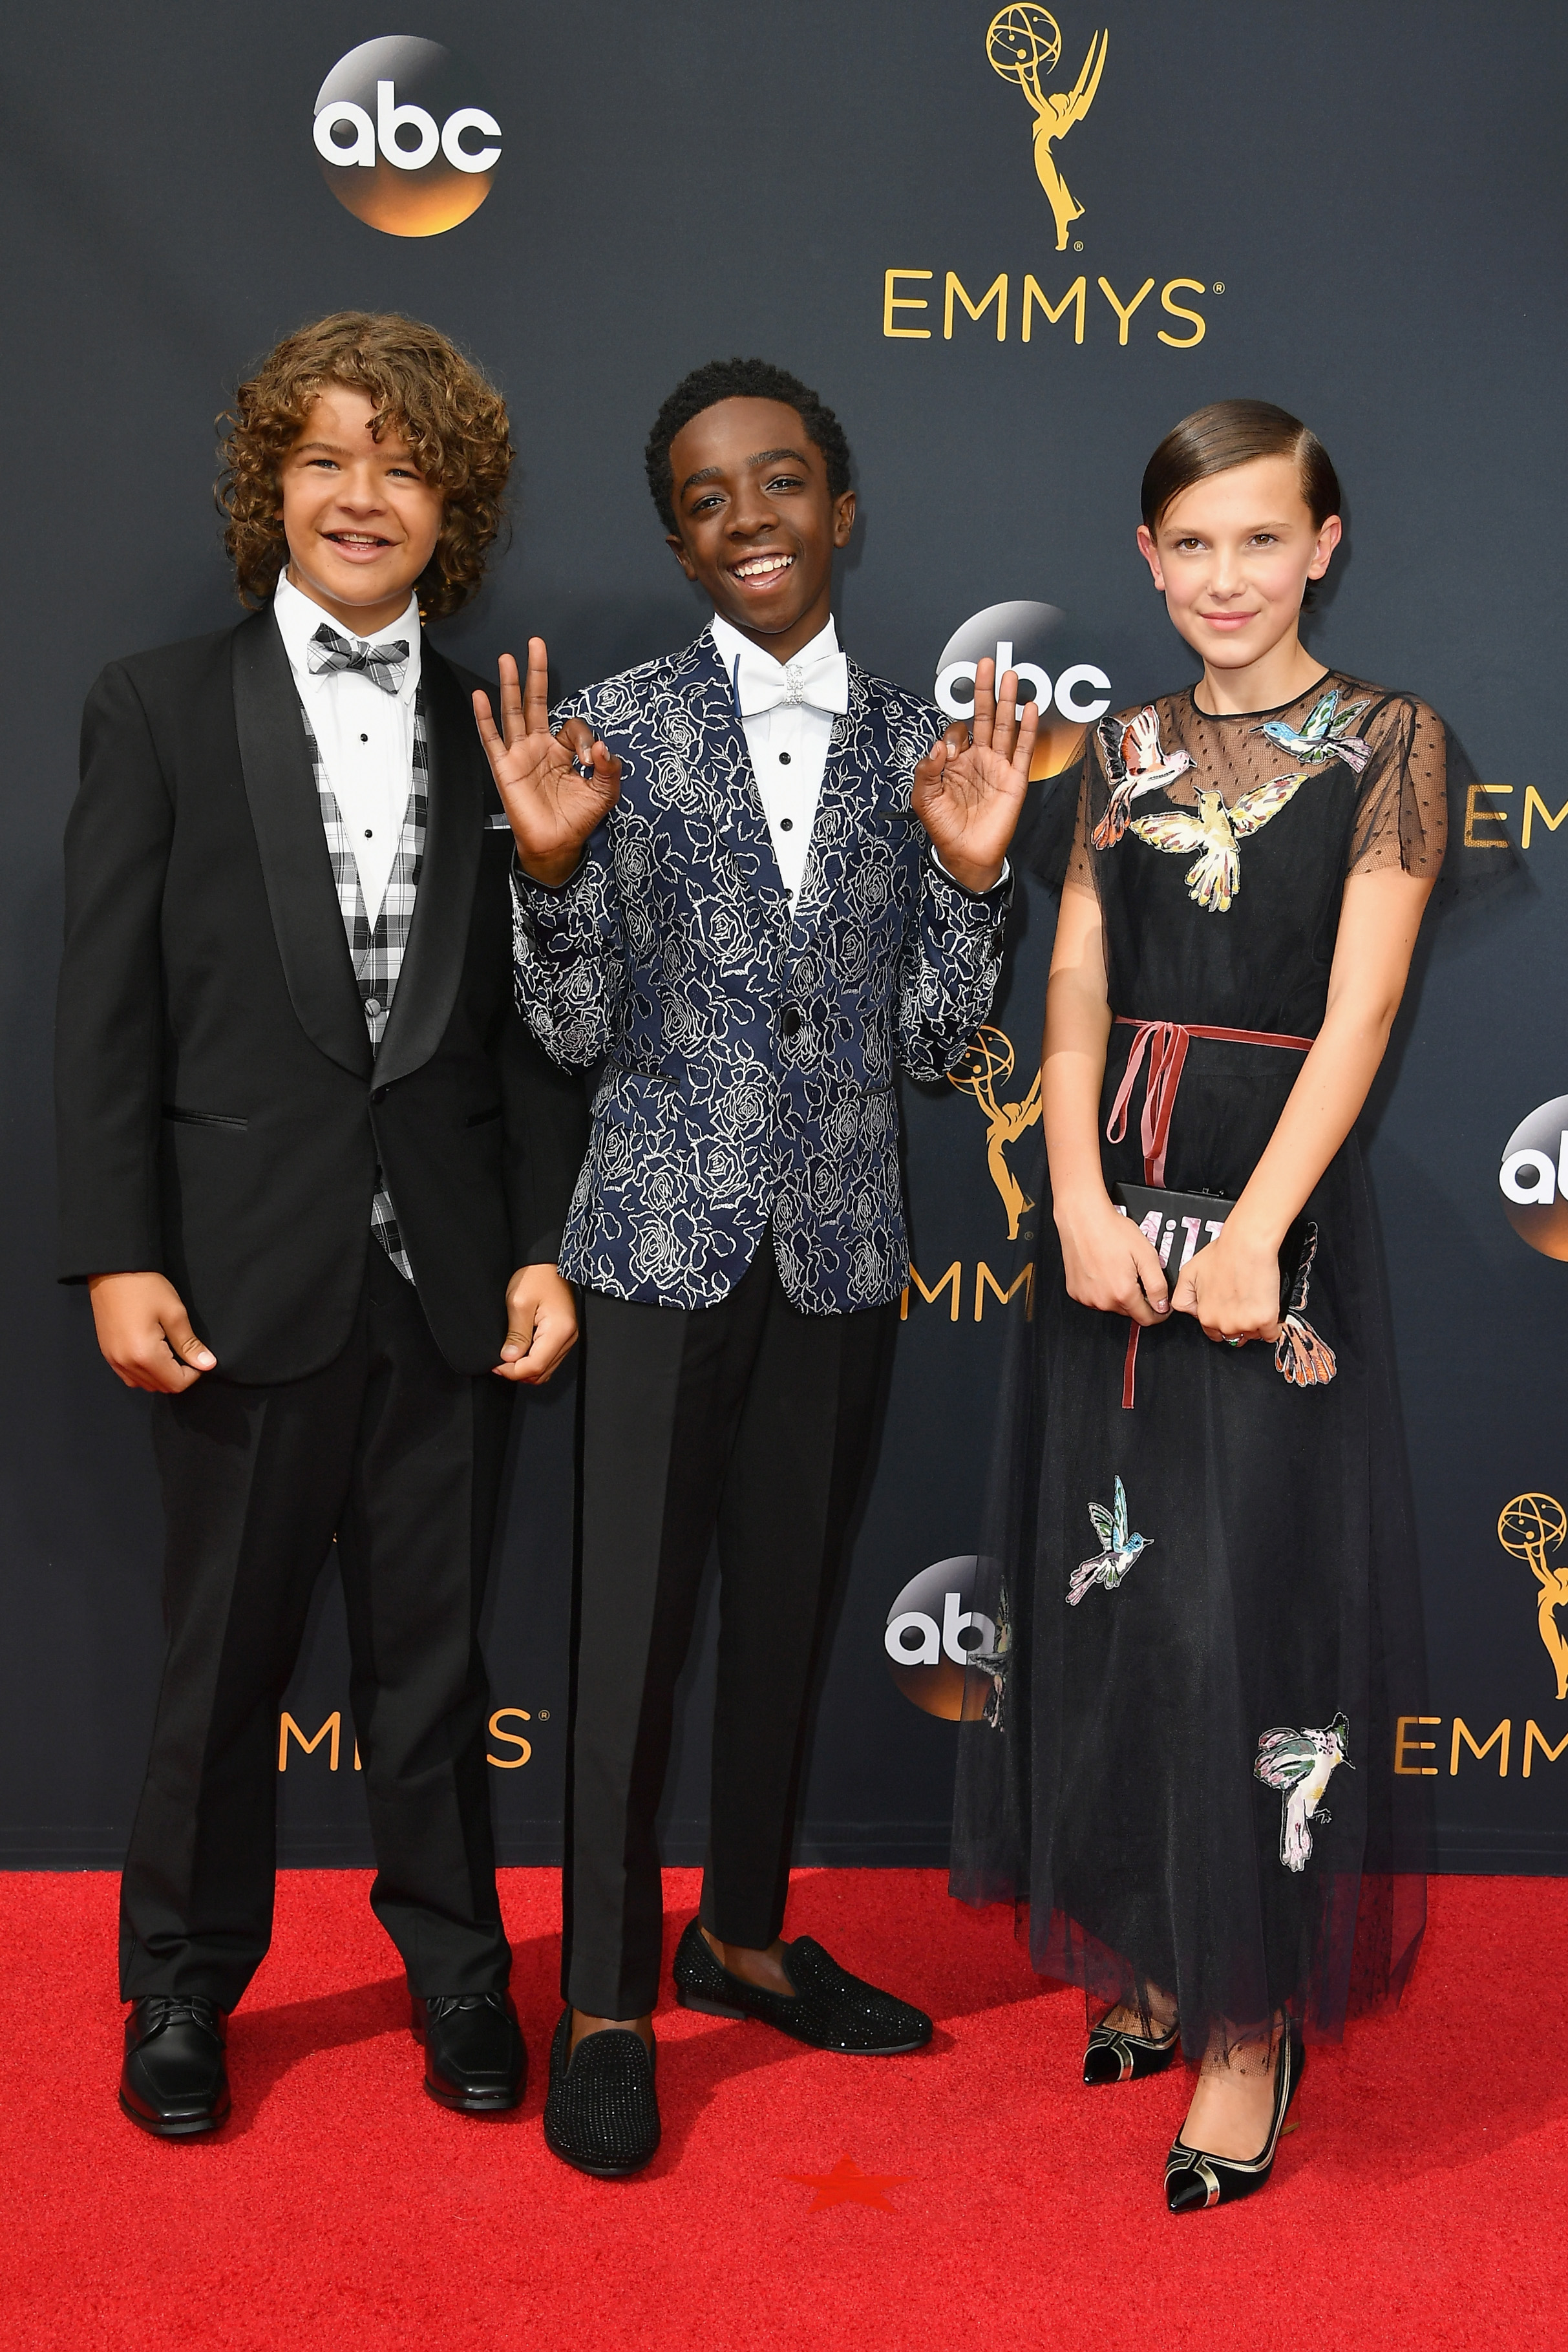 Gaten Matarazzo, Caleb McLaughlin and Millie Bobby Brown arrive at the 68th Annual Primetime Emmy Awards at Microsoft Theater on Sept. 18, 2016 in Los Angeles.